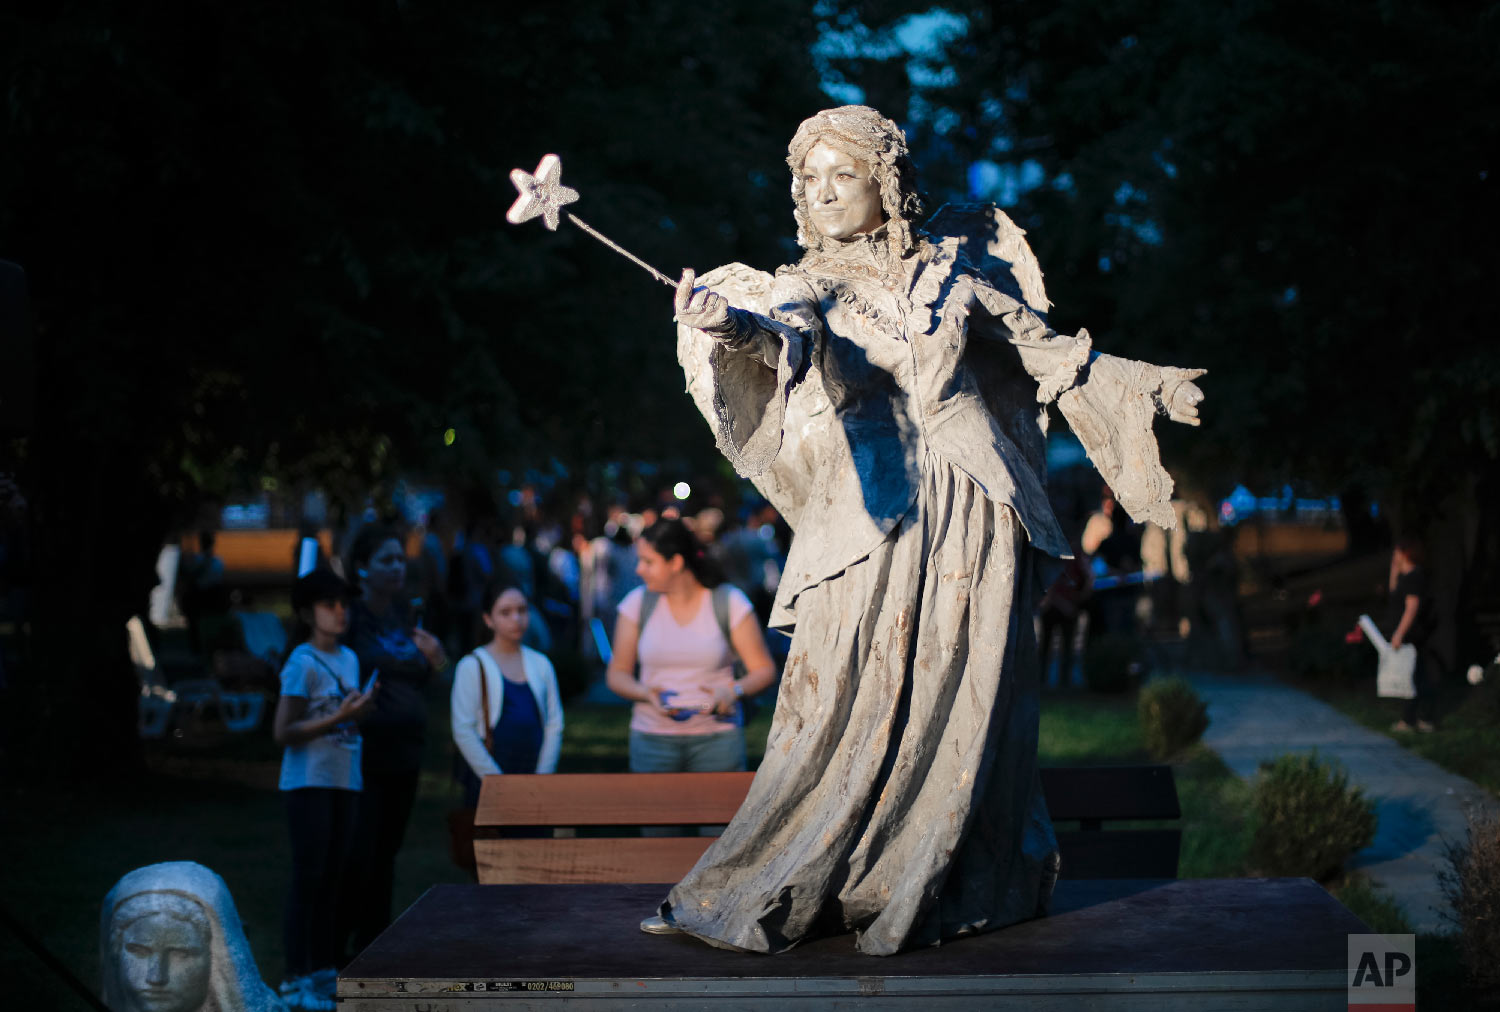 An artist of The Netherlands' Levend Theater performs the Angel character during the Living Statues International Festival, in Bucharest, Romania on Tuesday, May 22, 2018.(AP Photo/Vadim Ghirda)